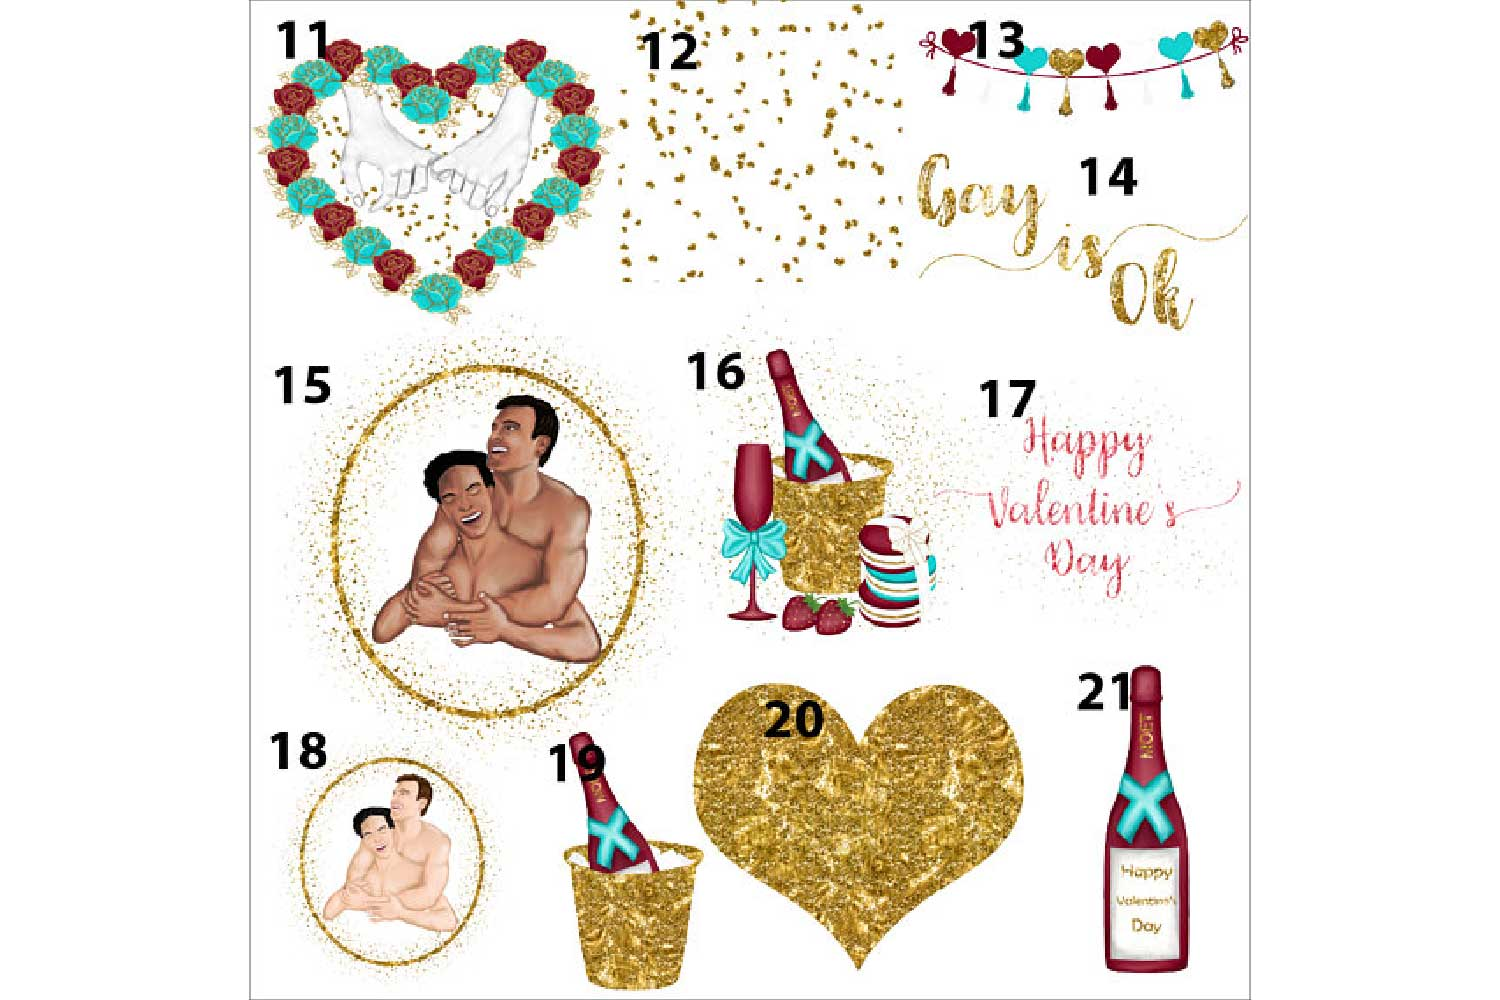 Gay Valentines Day clipart example image 4